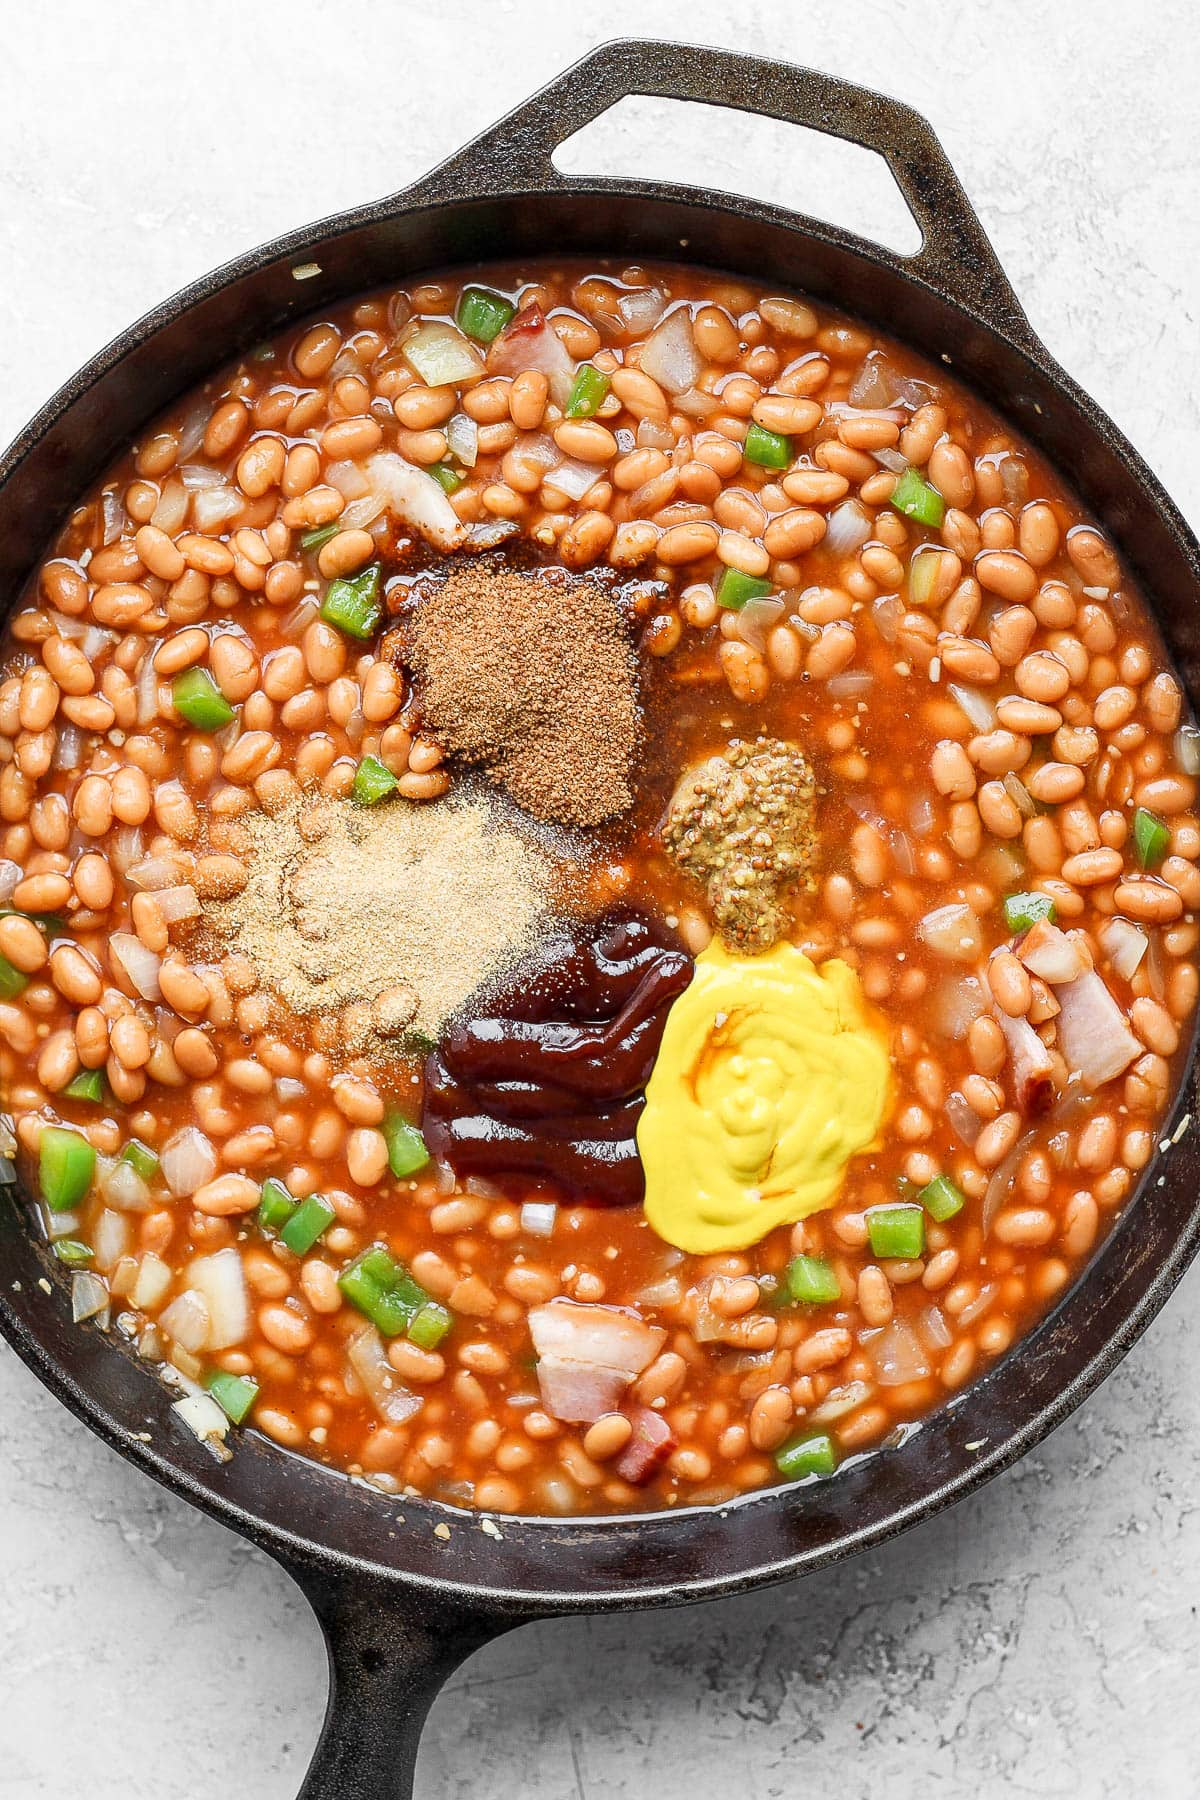 All the ingredients in a cast iron pan to make baked beans.